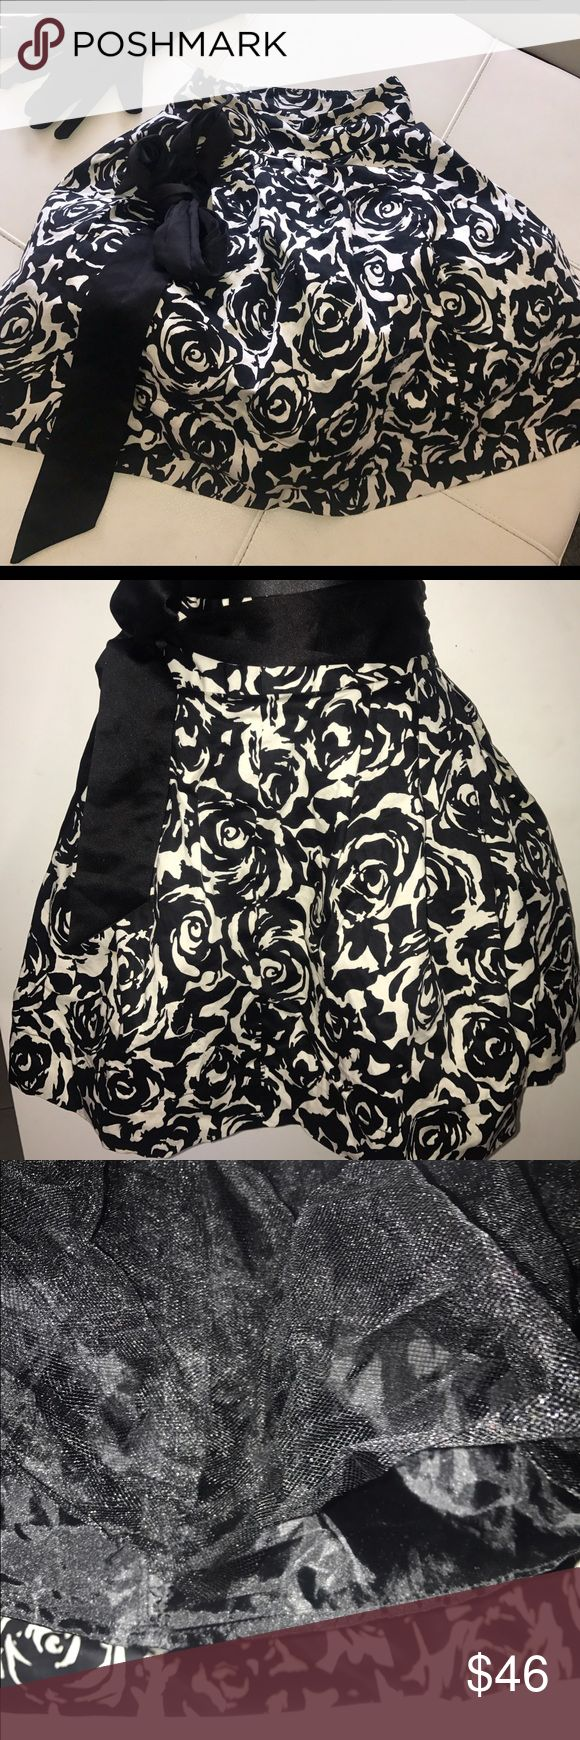 F21 Cream & Black rose print woman's  tulle skirt. F21 ( FOREVER 21 )  Cream & Black rose print woman's  tulle skirt. - Size small . worn once - great condition.  ..Special Edition .. Zip up back. Black waist belt included which can be tied in the front , side , or back . Reminiscent of White House Black Market . Forever 21 Skirts A-Line or Full